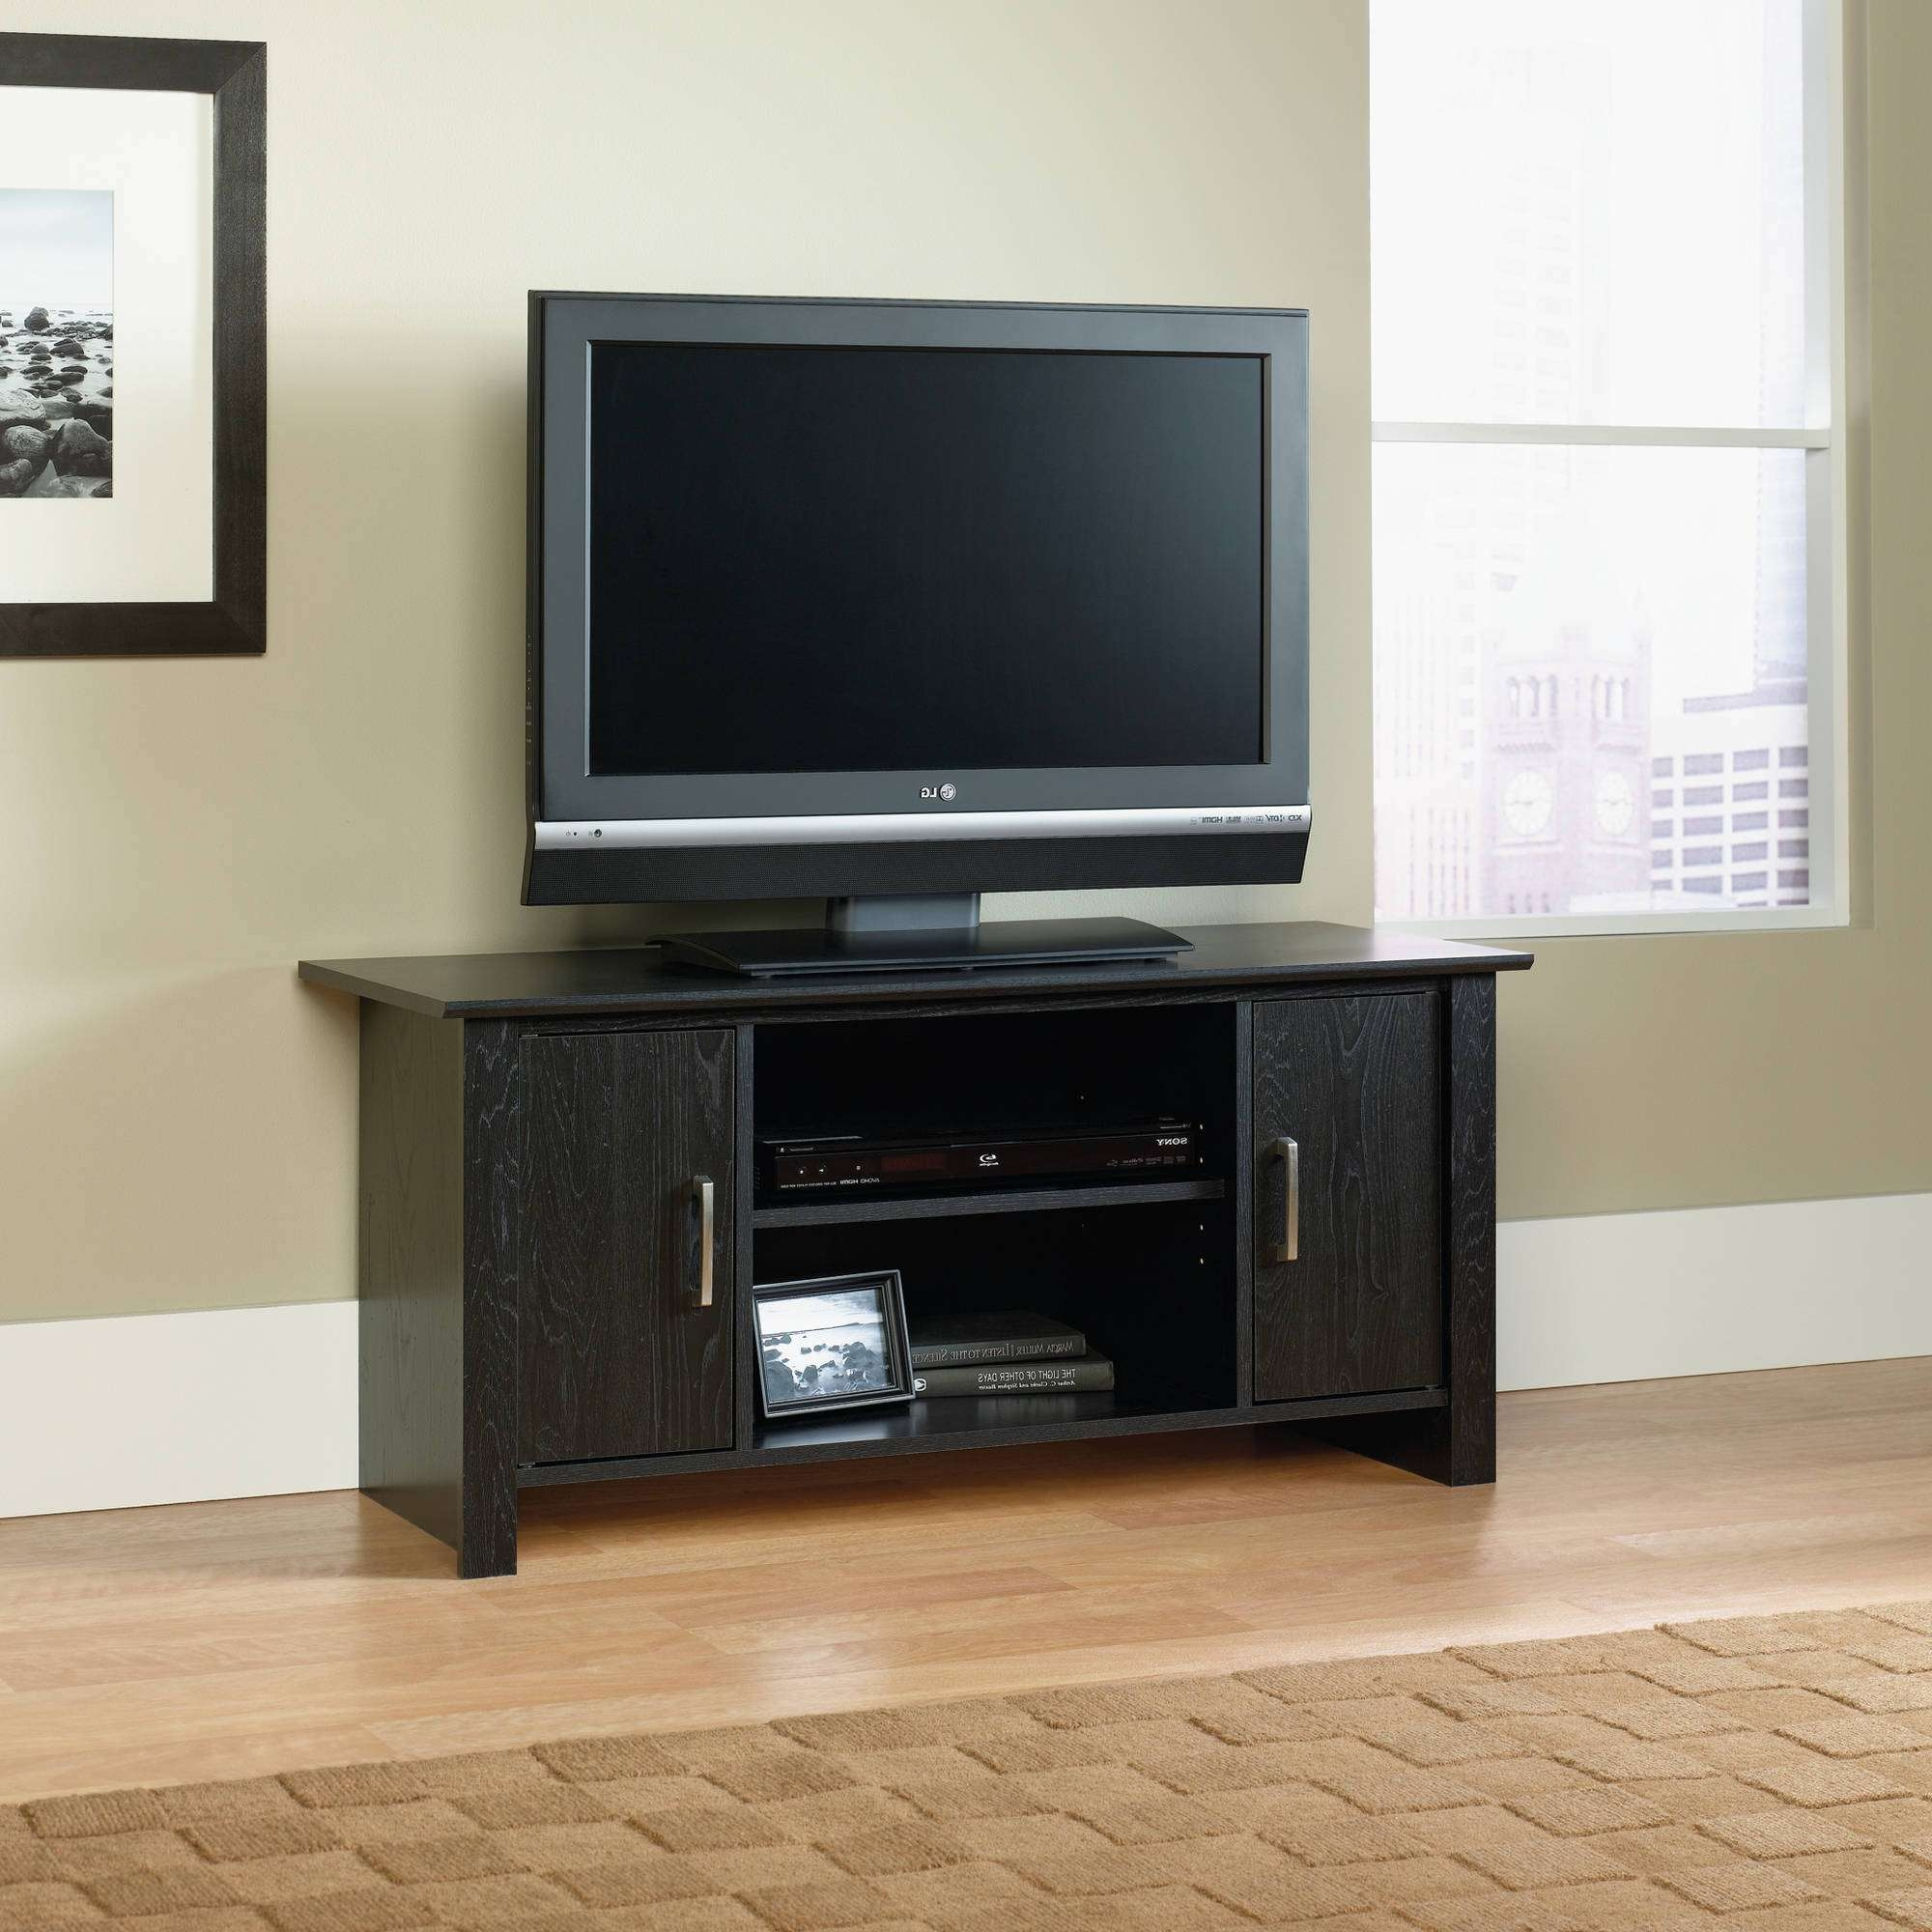 15 Inspirations Of Storage Tv Stands